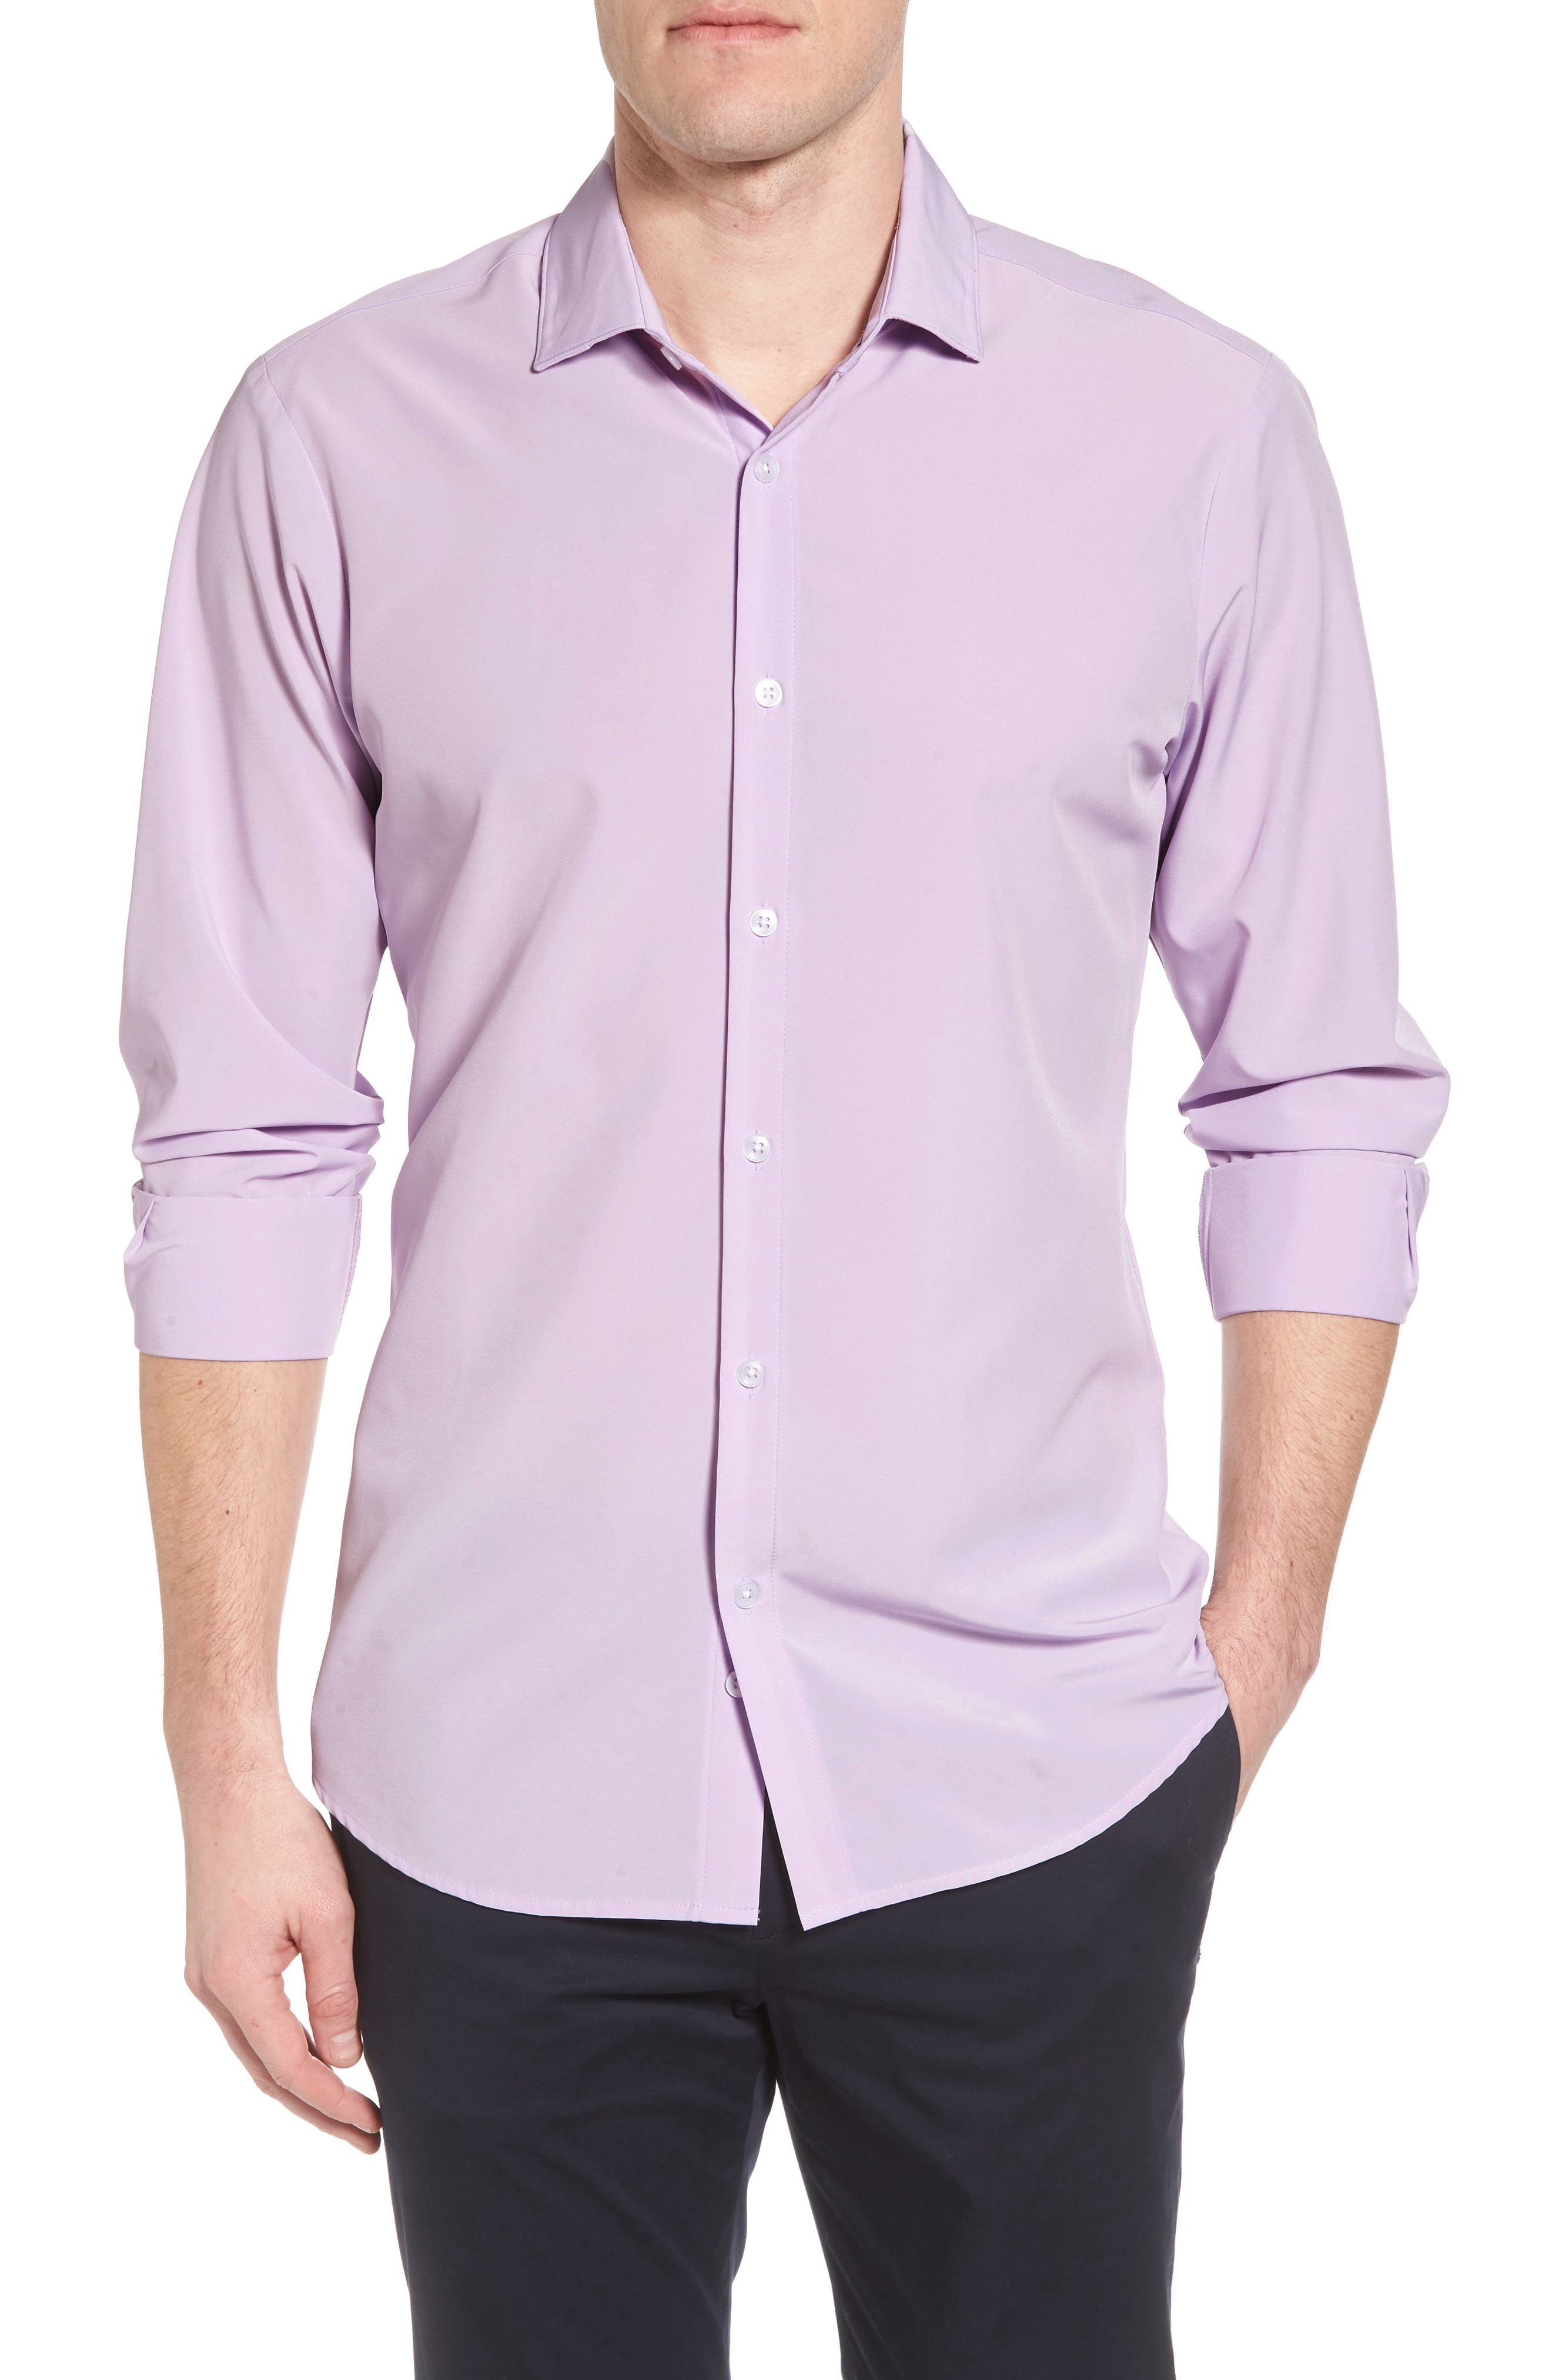 Henderson Performance Sport Shirt,                         Main,                         color, Purple